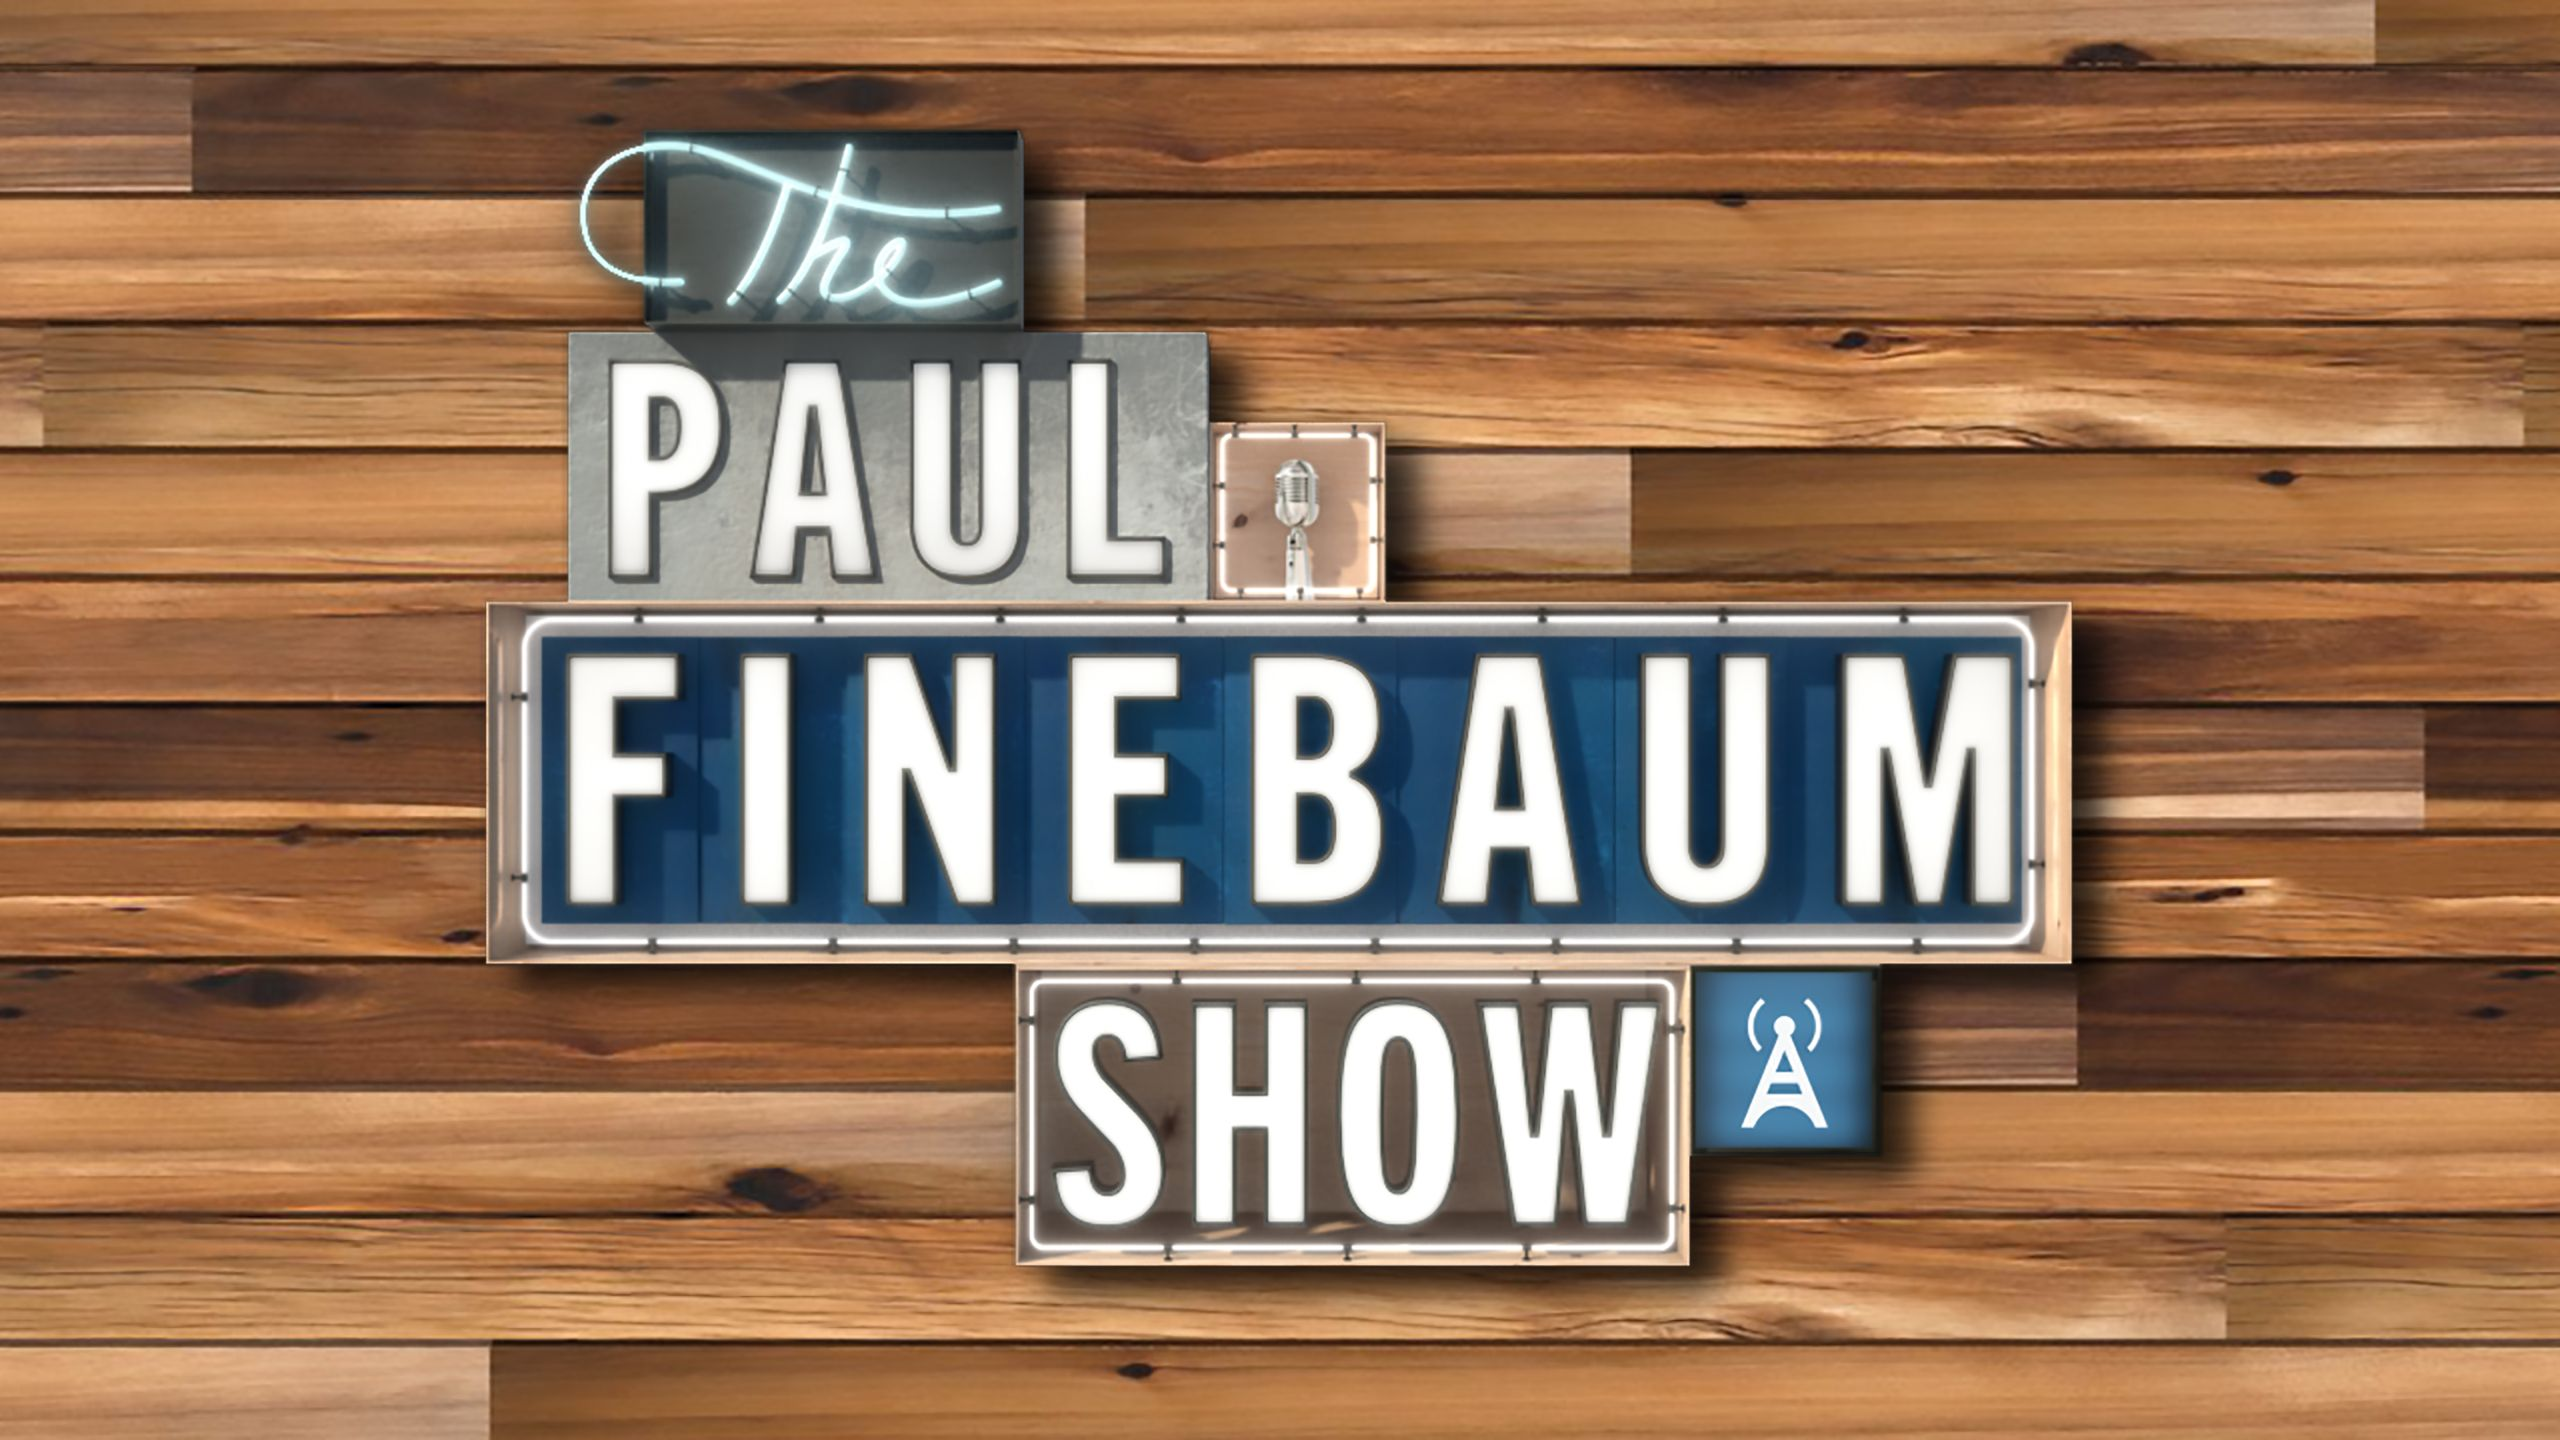 Wed, 2/21 - The Paul Finebaum Show